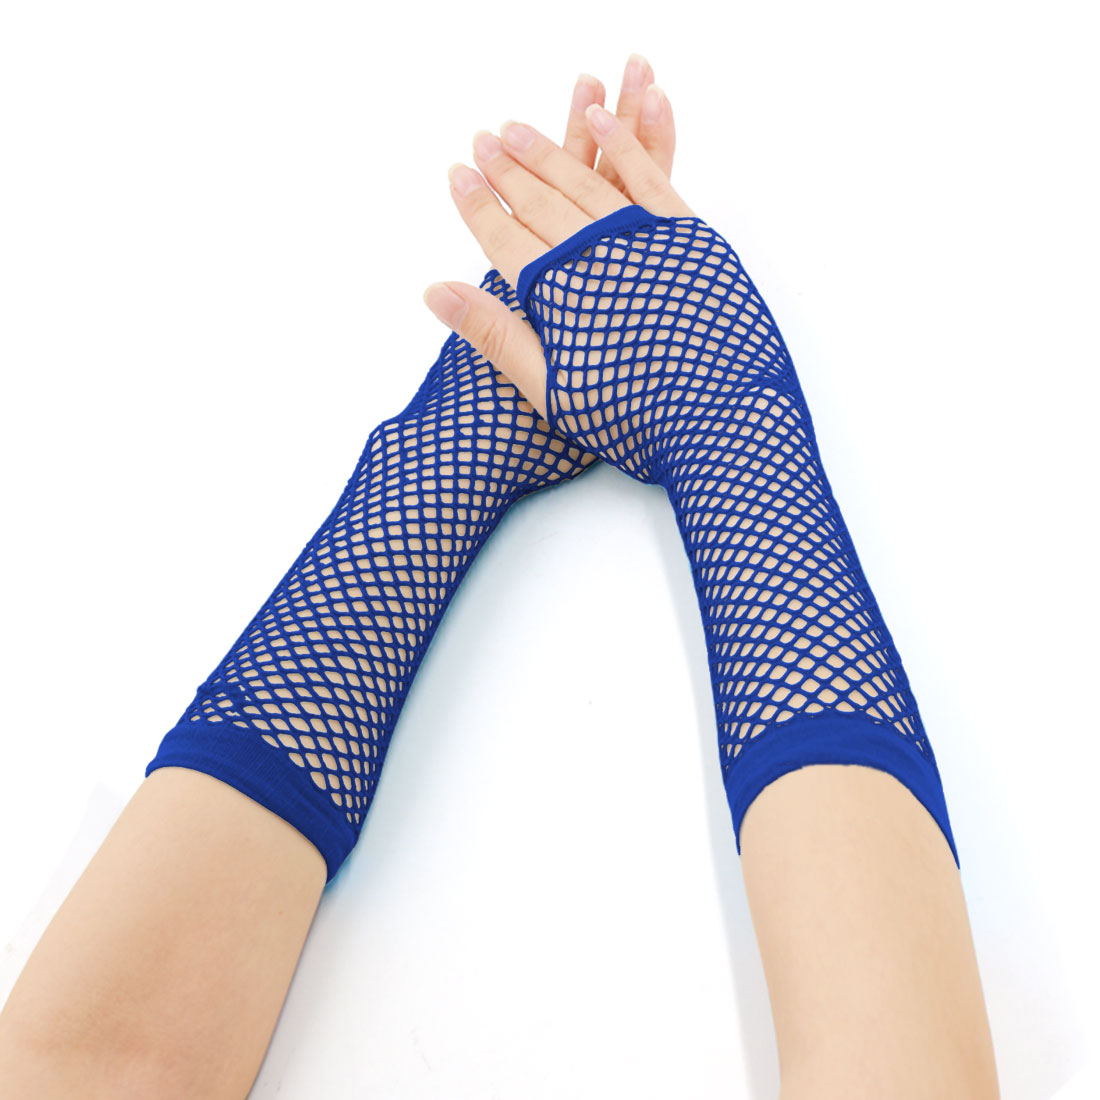 Women's Elbow Length Fingerless Fishnet Gloves 2 Pairs Blue